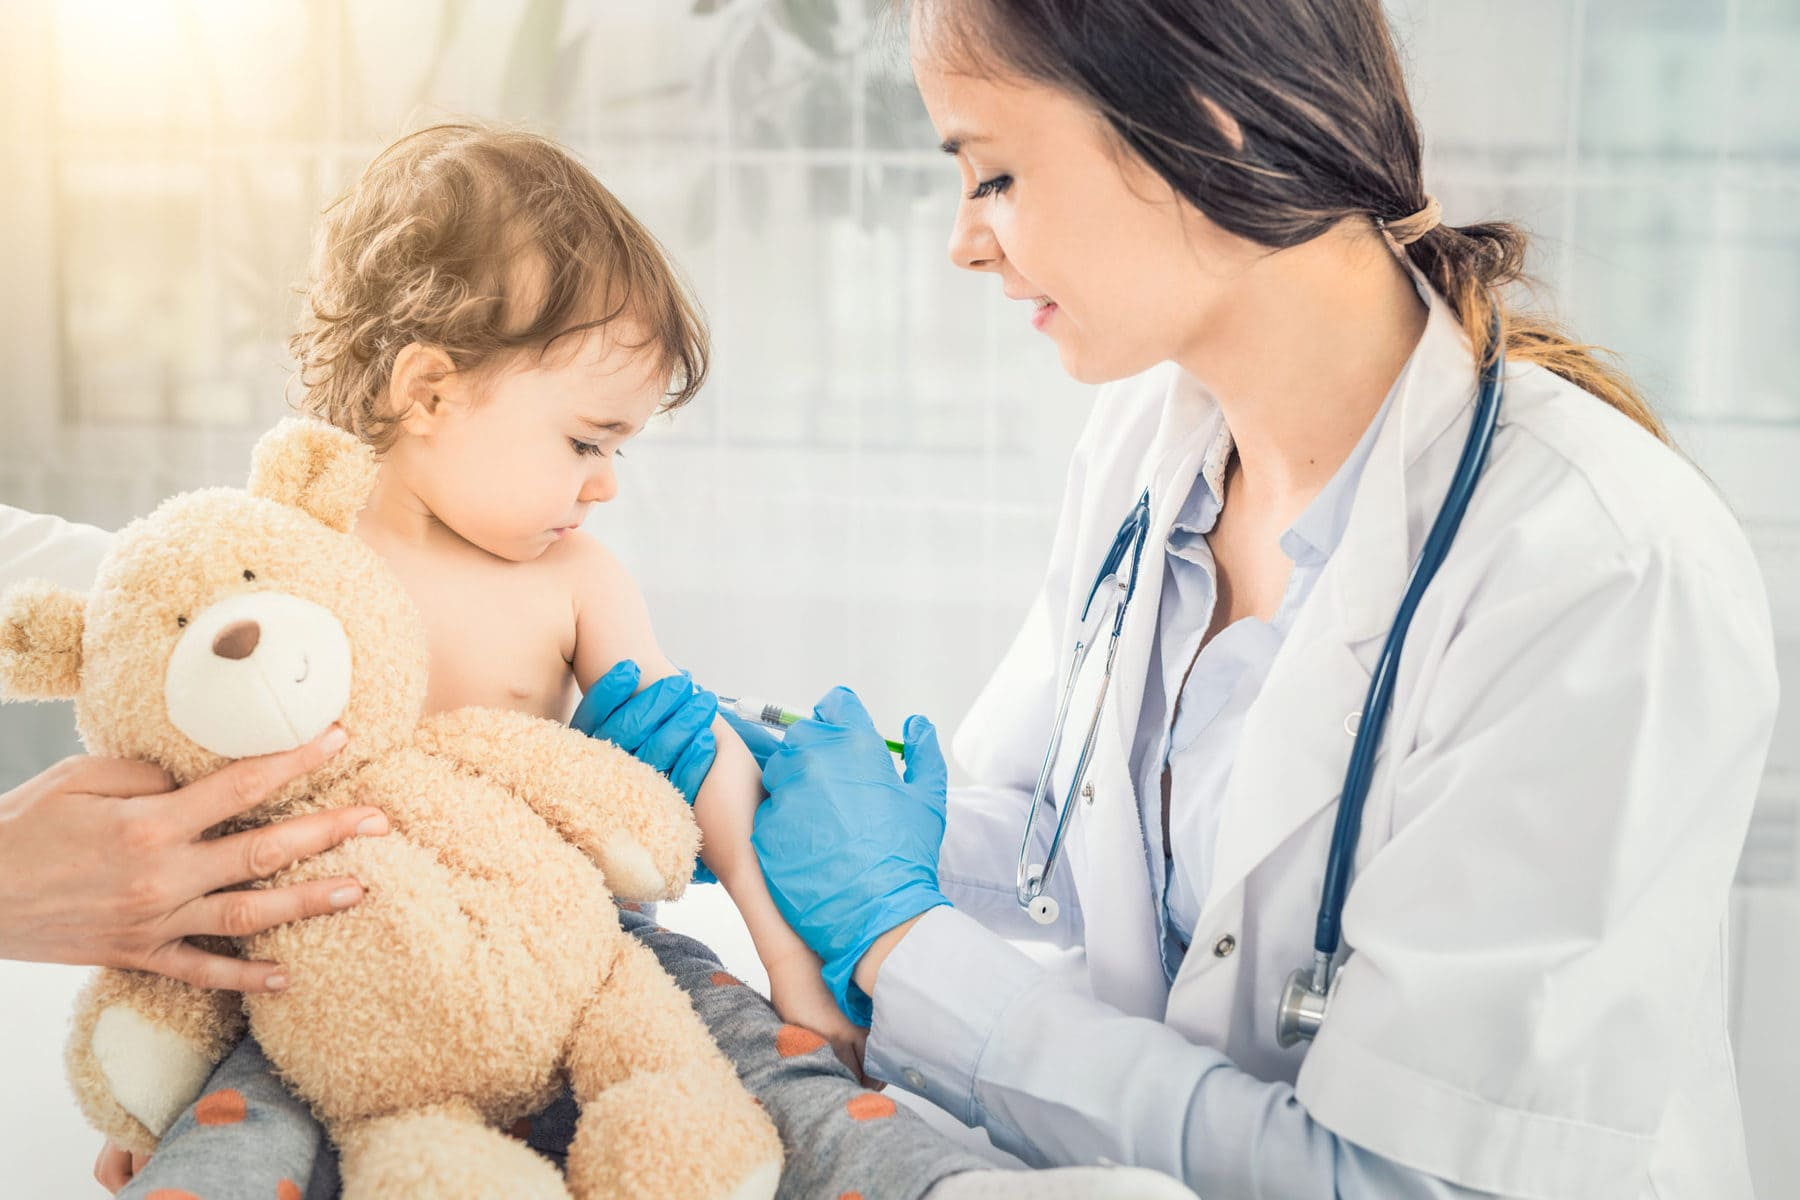 Are your child's immunisations up-to-date?